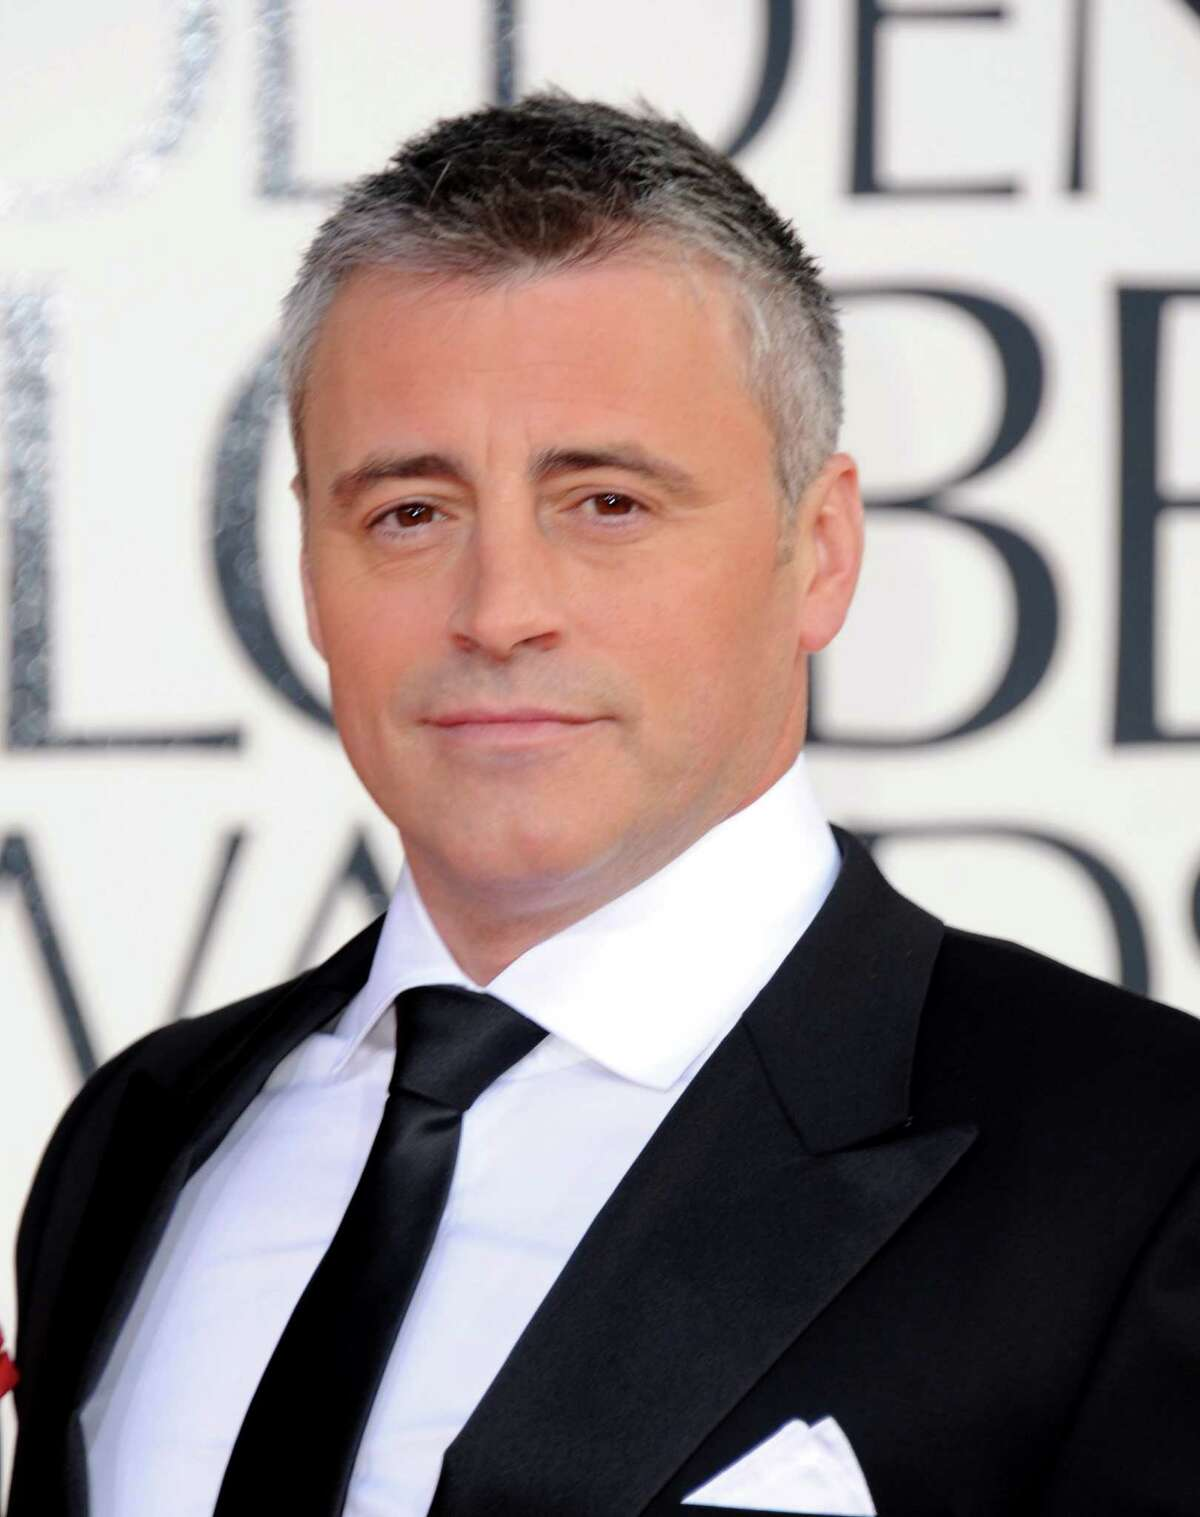 Actor Matt LeBlanc arrives at the 70th Annual Golden Globe Awards at the Beverly Hilton Hotel on Sunday Jan. 13, 2013, in Beverly Hills, Calif. (Photo by Jordan Strauss/Invision/AP)